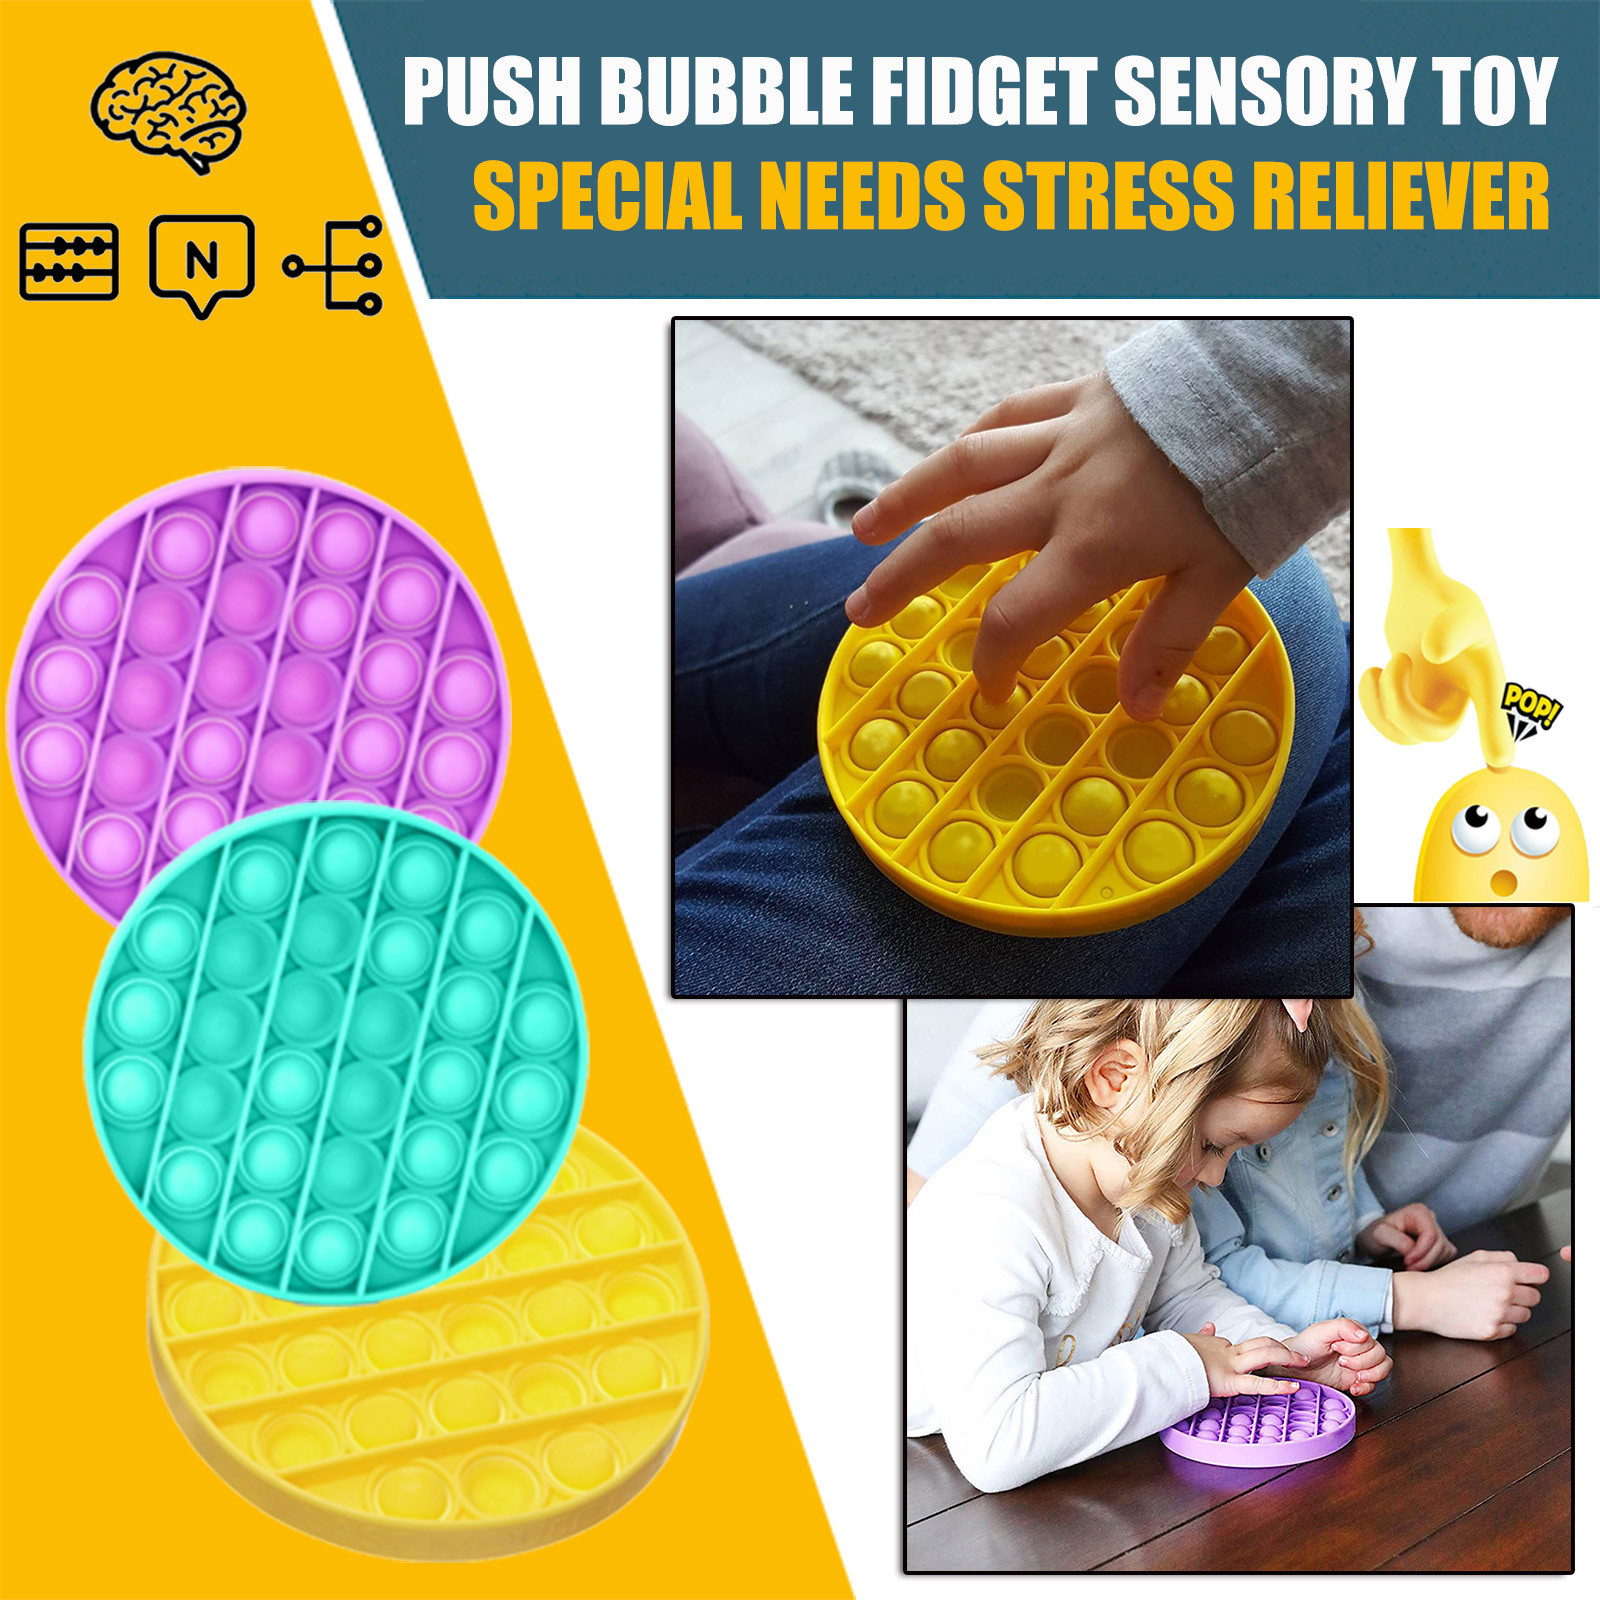 Figet Toys Squeeze-Toy Needs-Stress Push Bubble POPS Squishy Reliever Special Adult Children